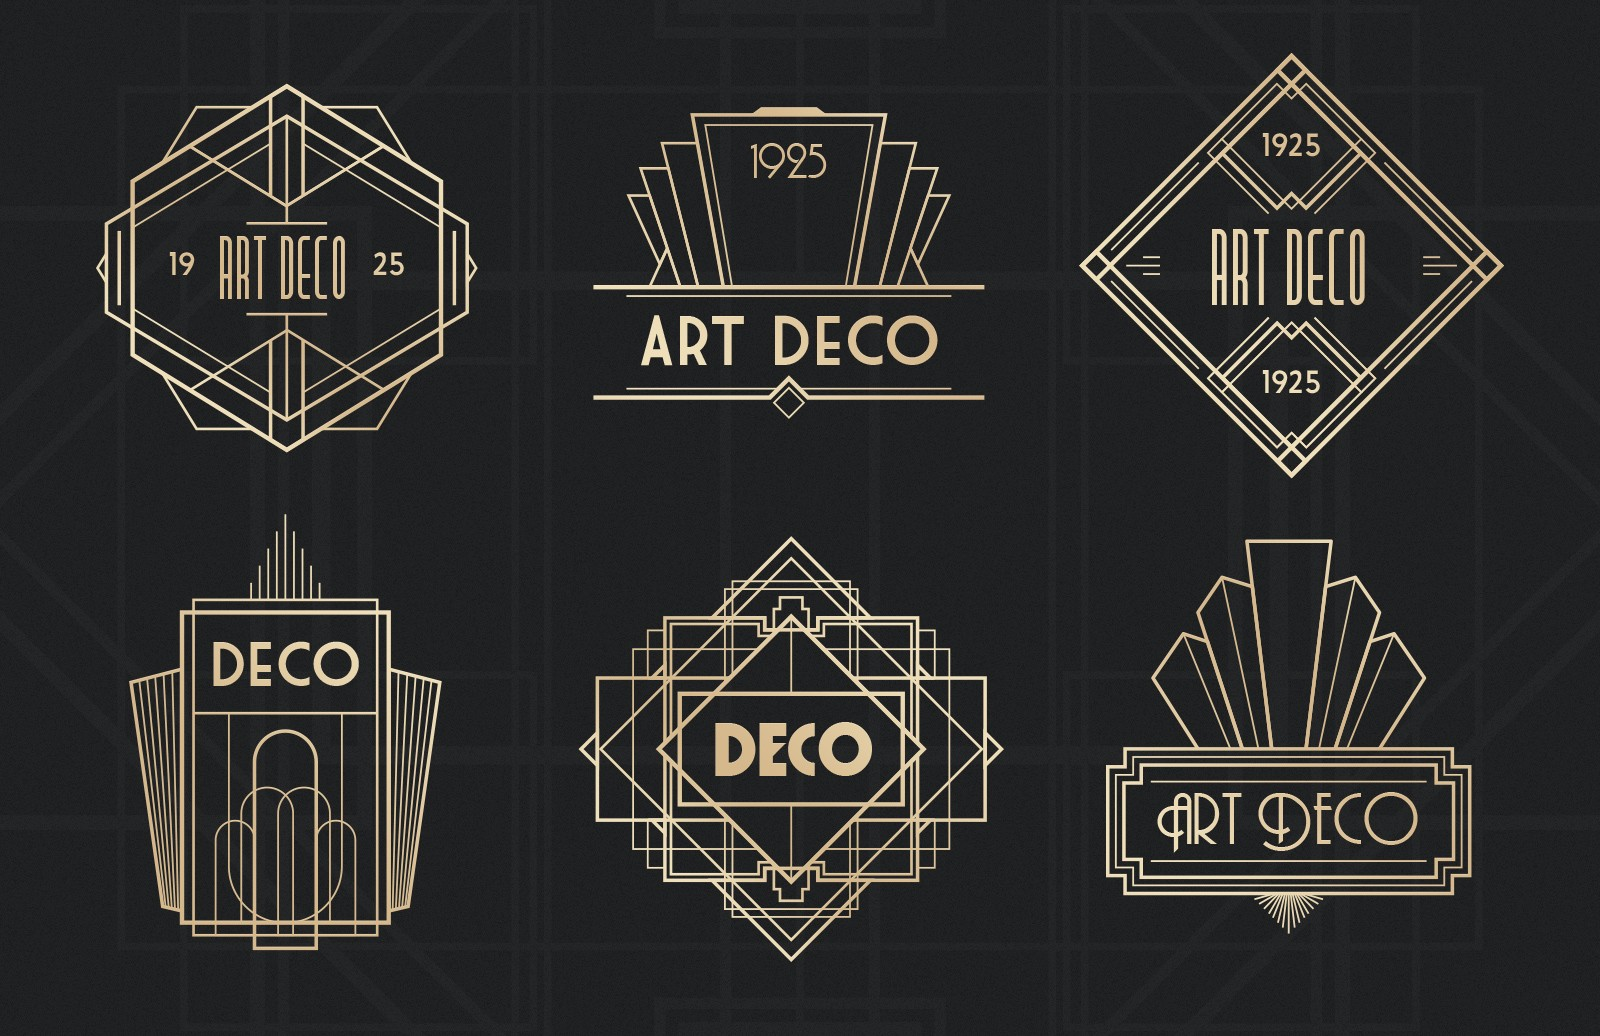 Geo12pf also 1920s Graphic Patterns in addition Royalty Free Stock Photos Corner Element Ornate Decorated Mehndi Design Rich Floral Motive Image37762238 in addition Abstract moreover 32324149491. on art deco patterns